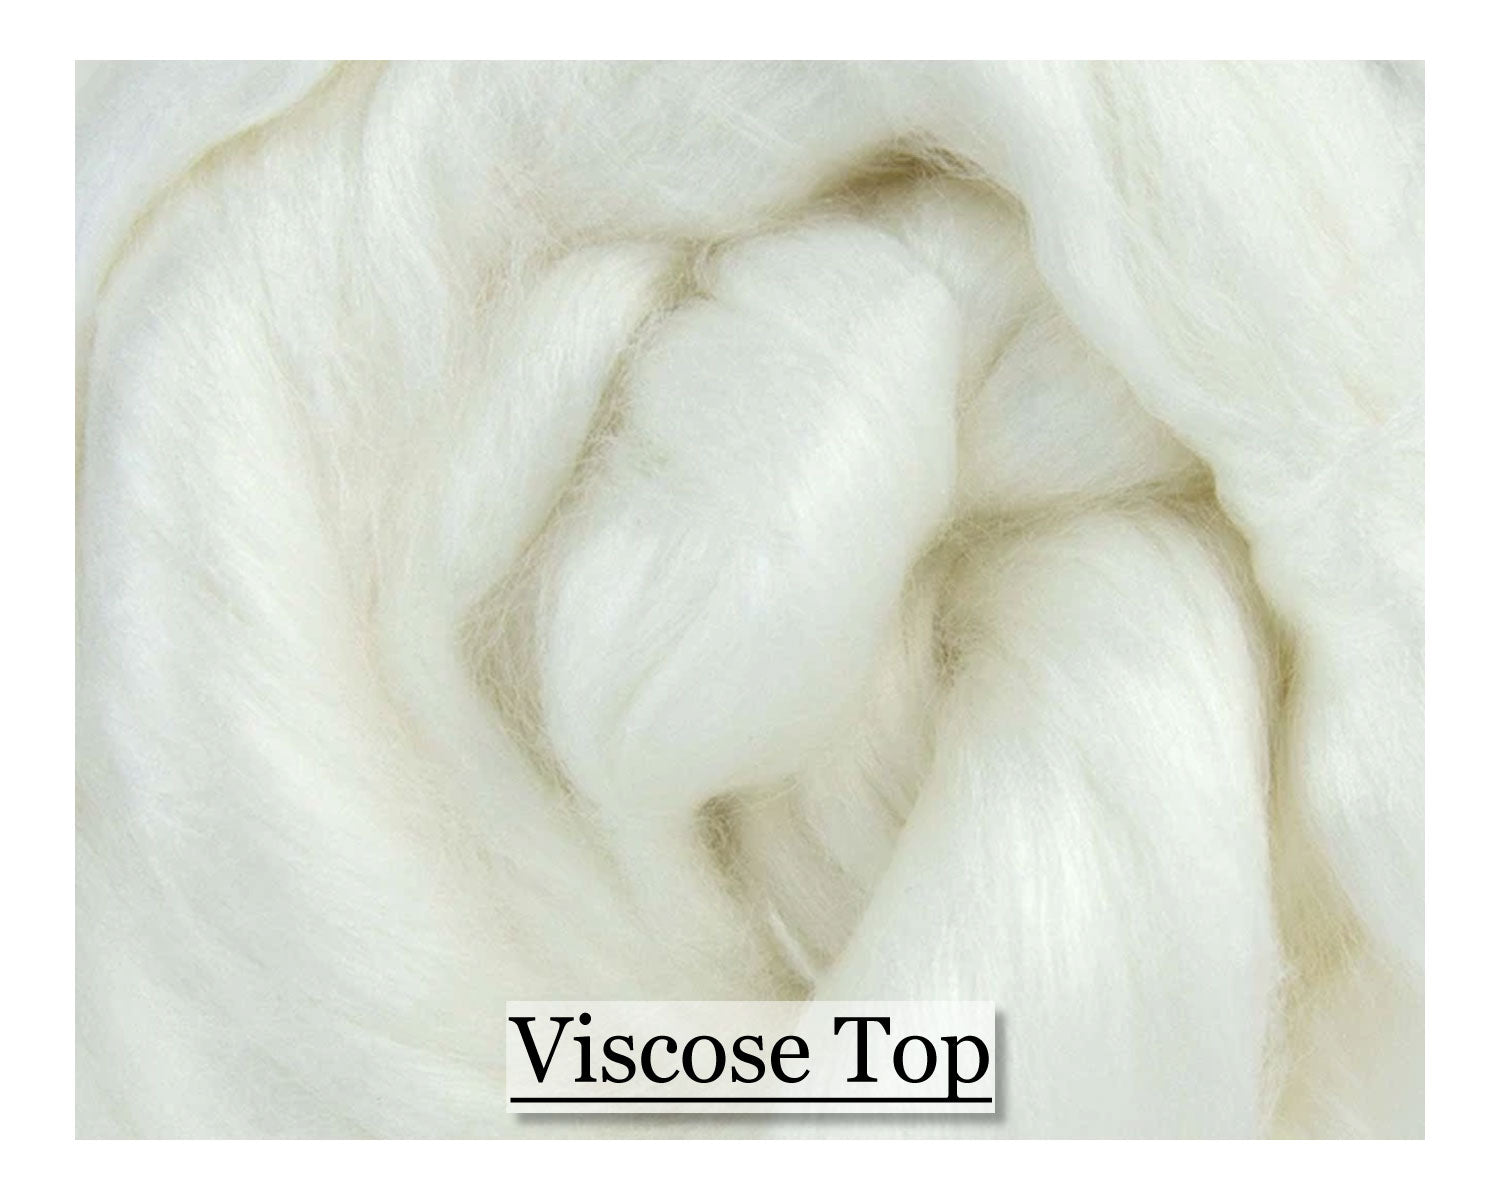 Viscose Top - 1, 2 or 4 oz